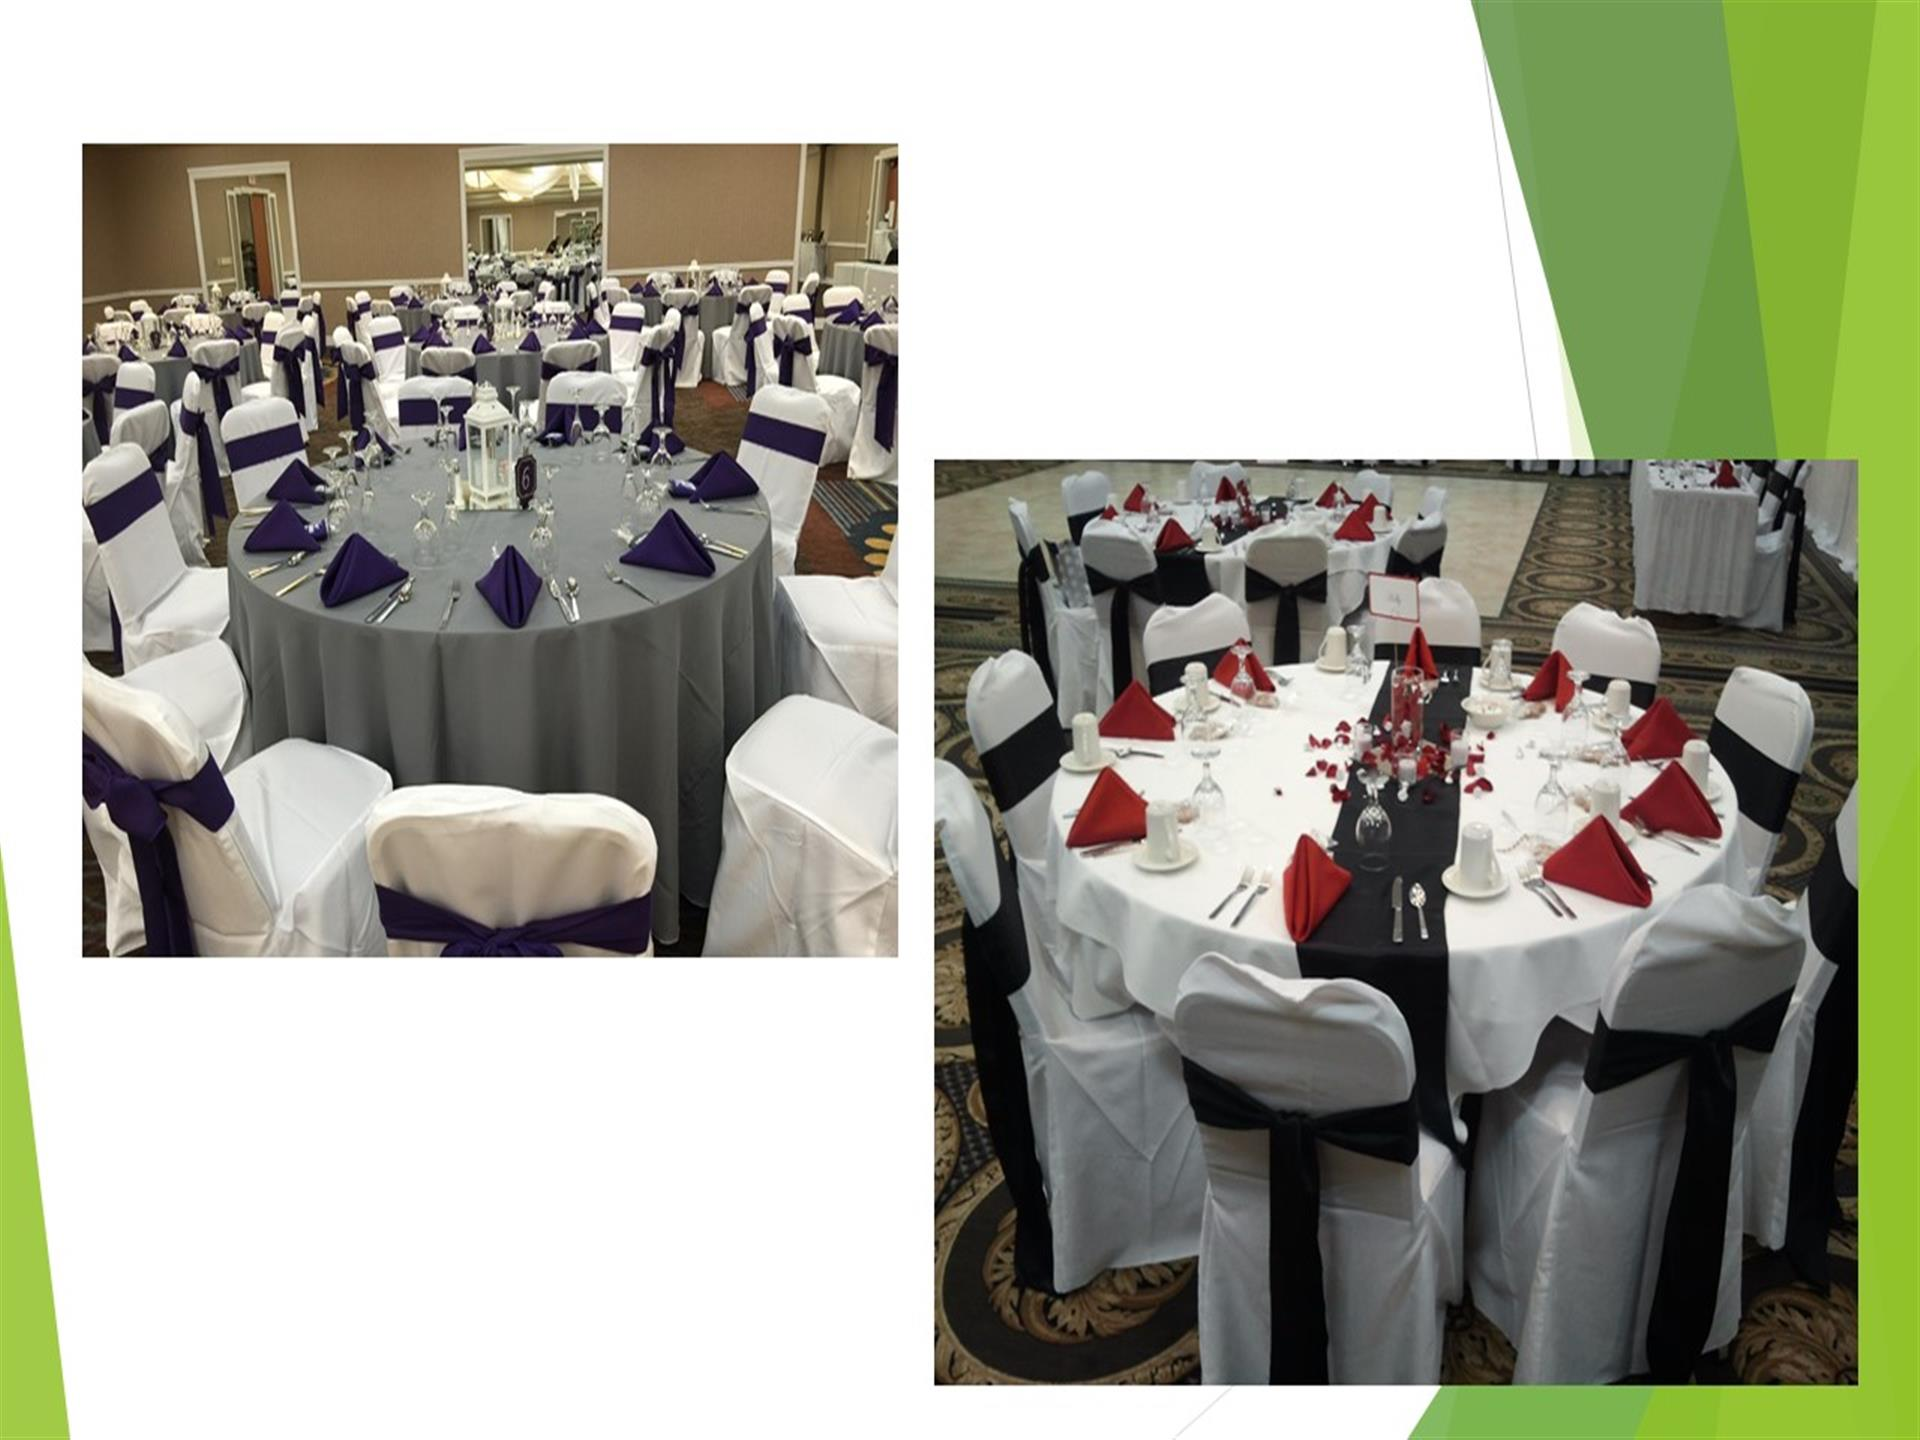 Dining tables in banquet room, gray and white table cloths